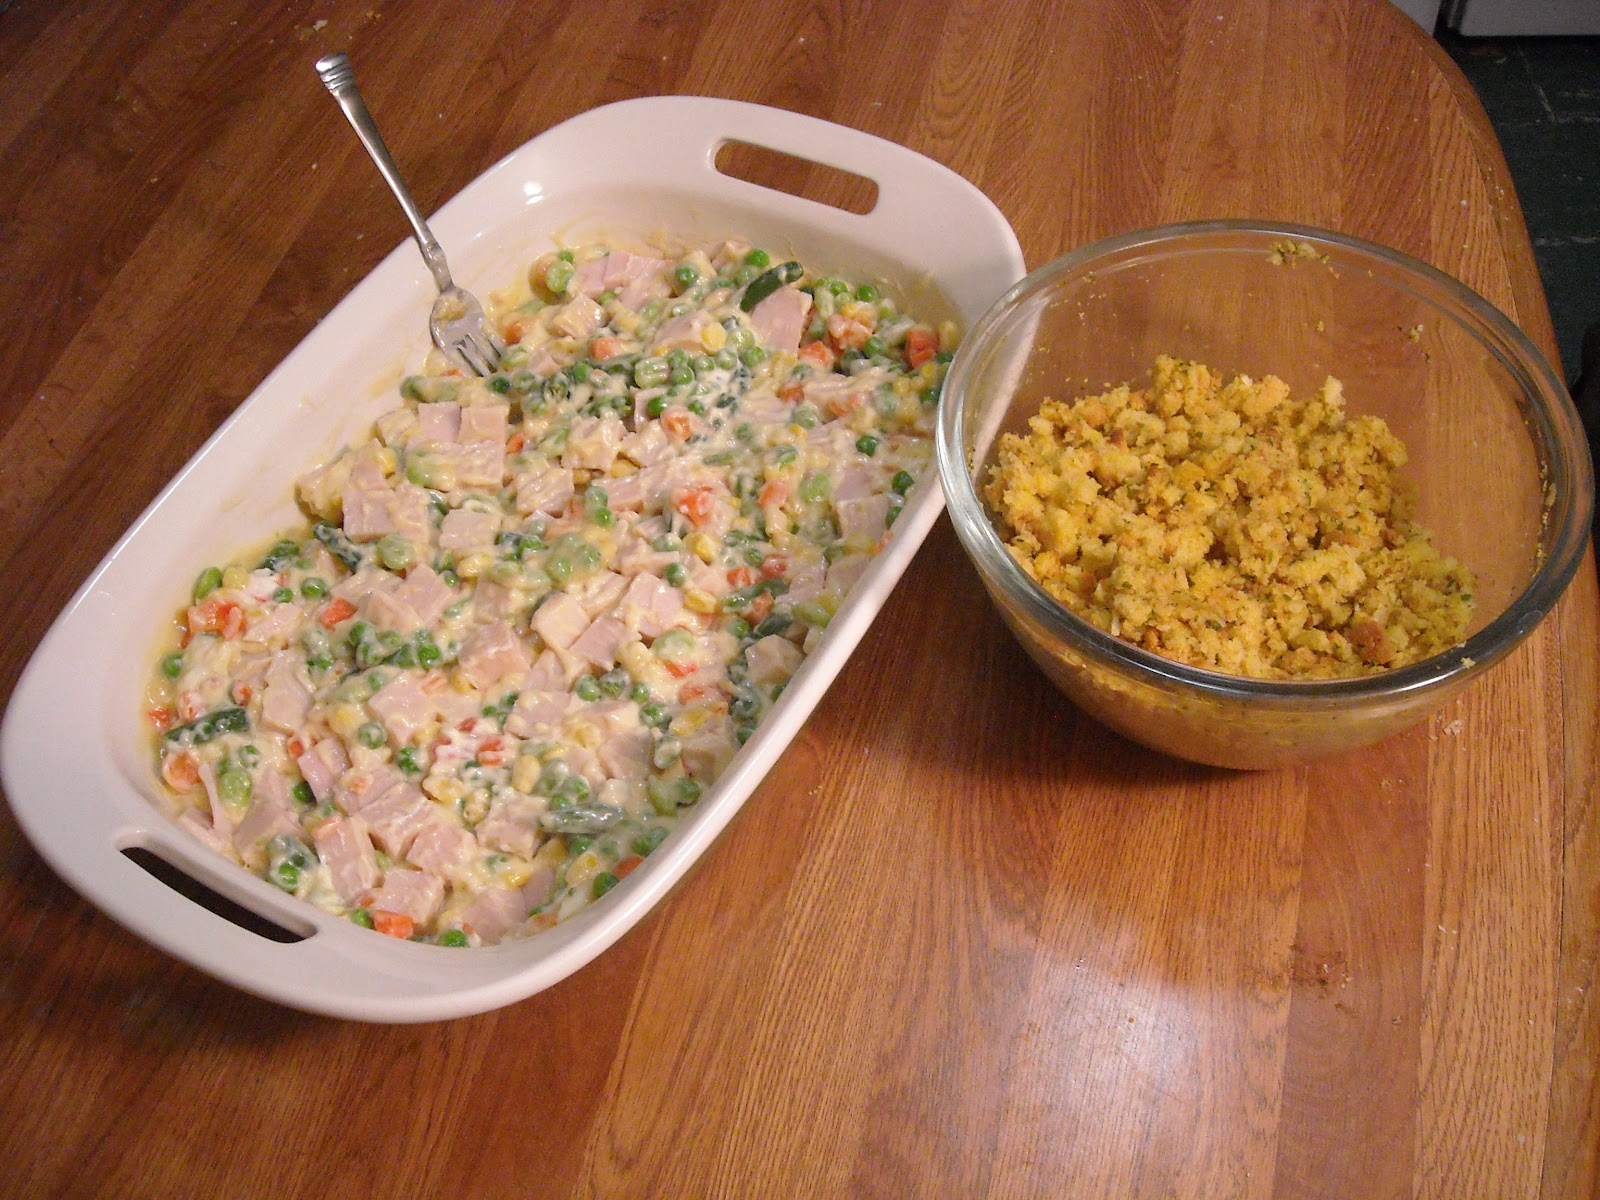 recipe on back: Stove Top Stuffing Easy Chicken Bake